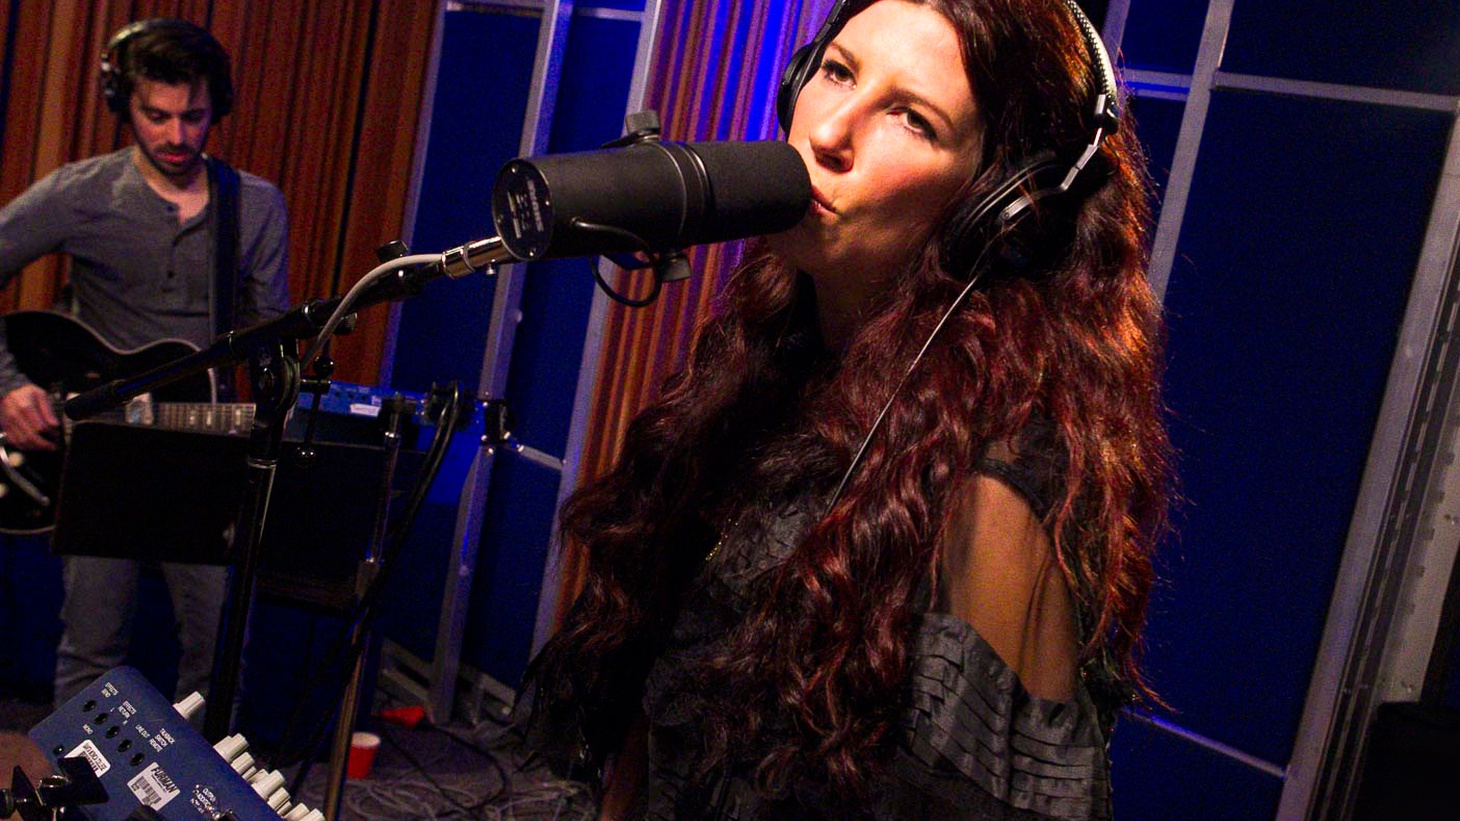 Shana Halligan and her sultry vocal stylings guided the jazzy trip hop duo Bitter:Sweet to success in the mid-2000's. She returns to our studio for a live session around her very personal sophomore solo album, Back to Me.